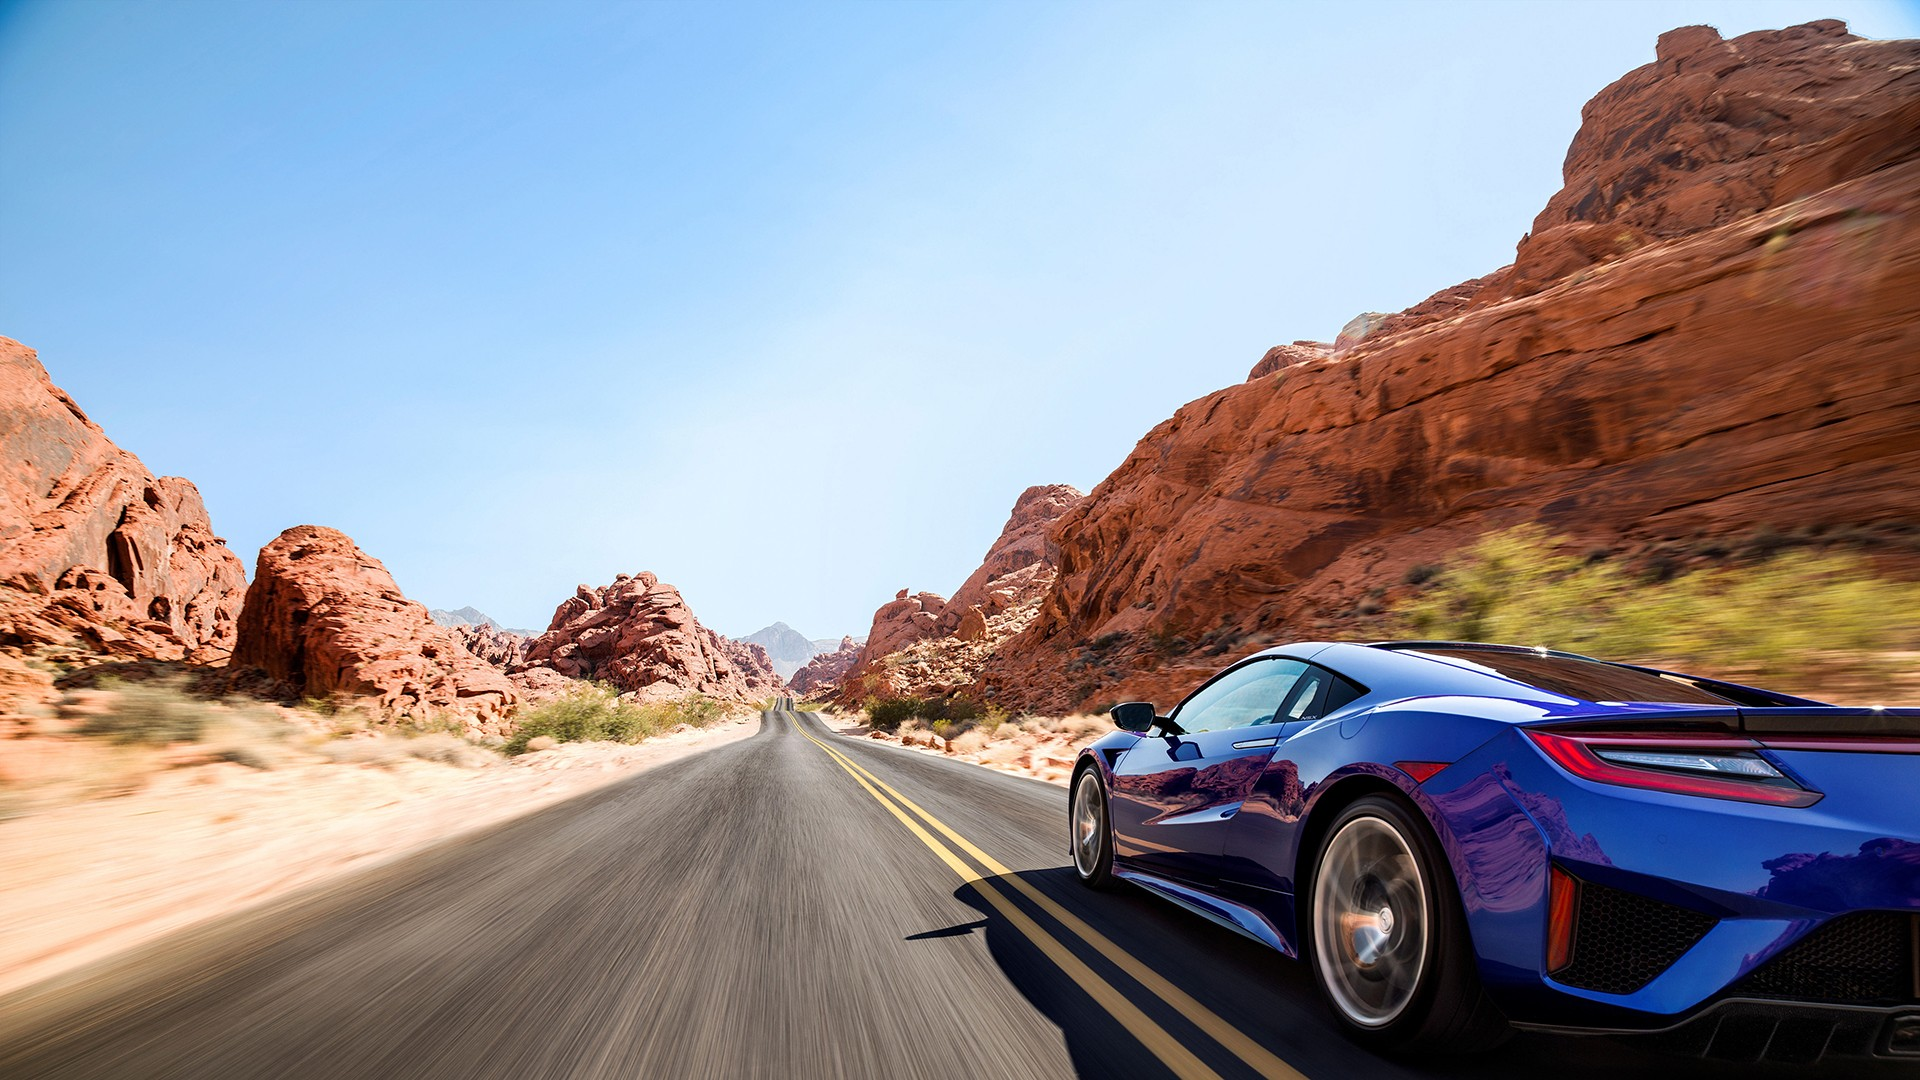 Car sports car blue road desert acura nsx wallpapers hd car sports car blue road desert acura nsx wallpapers hd desktop and mobile backgrounds voltagebd Gallery